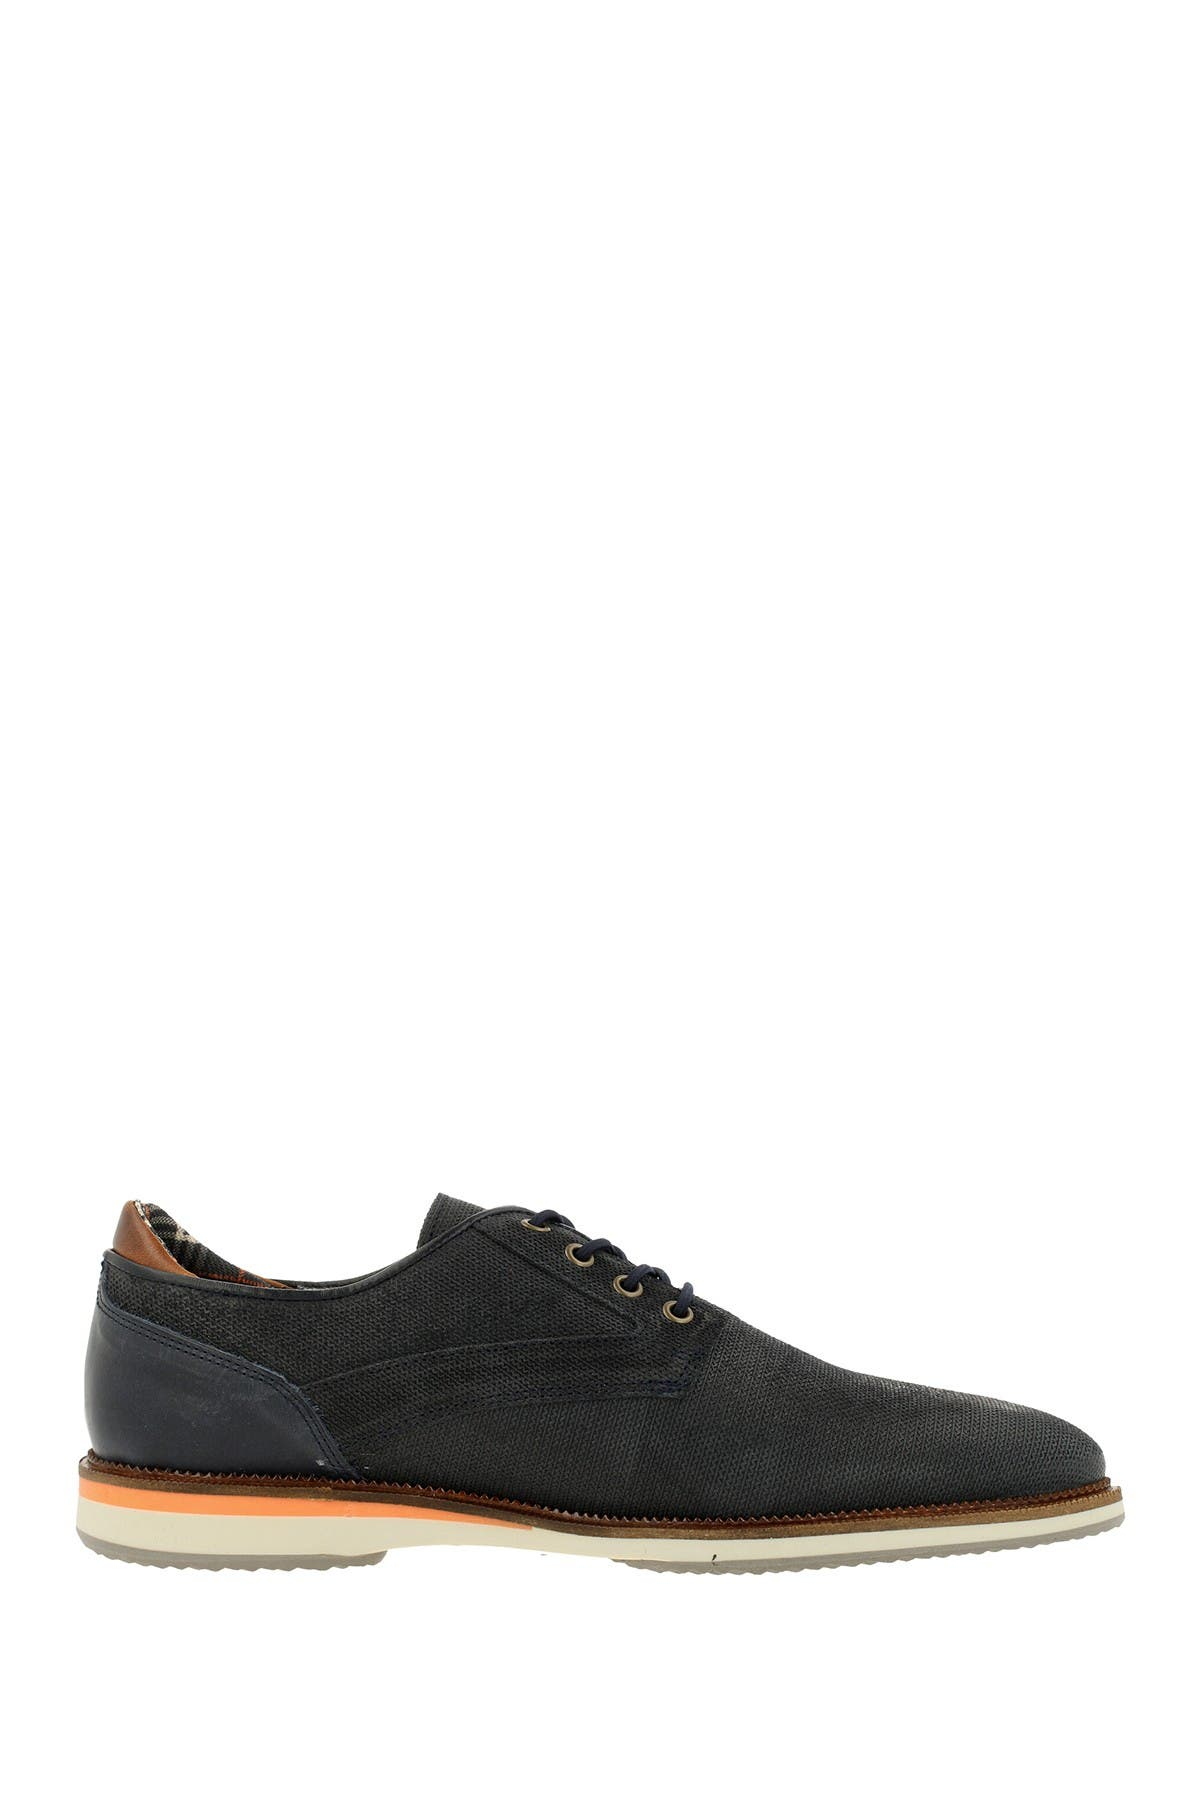 Image of Bullboxer Textured Leather Derby